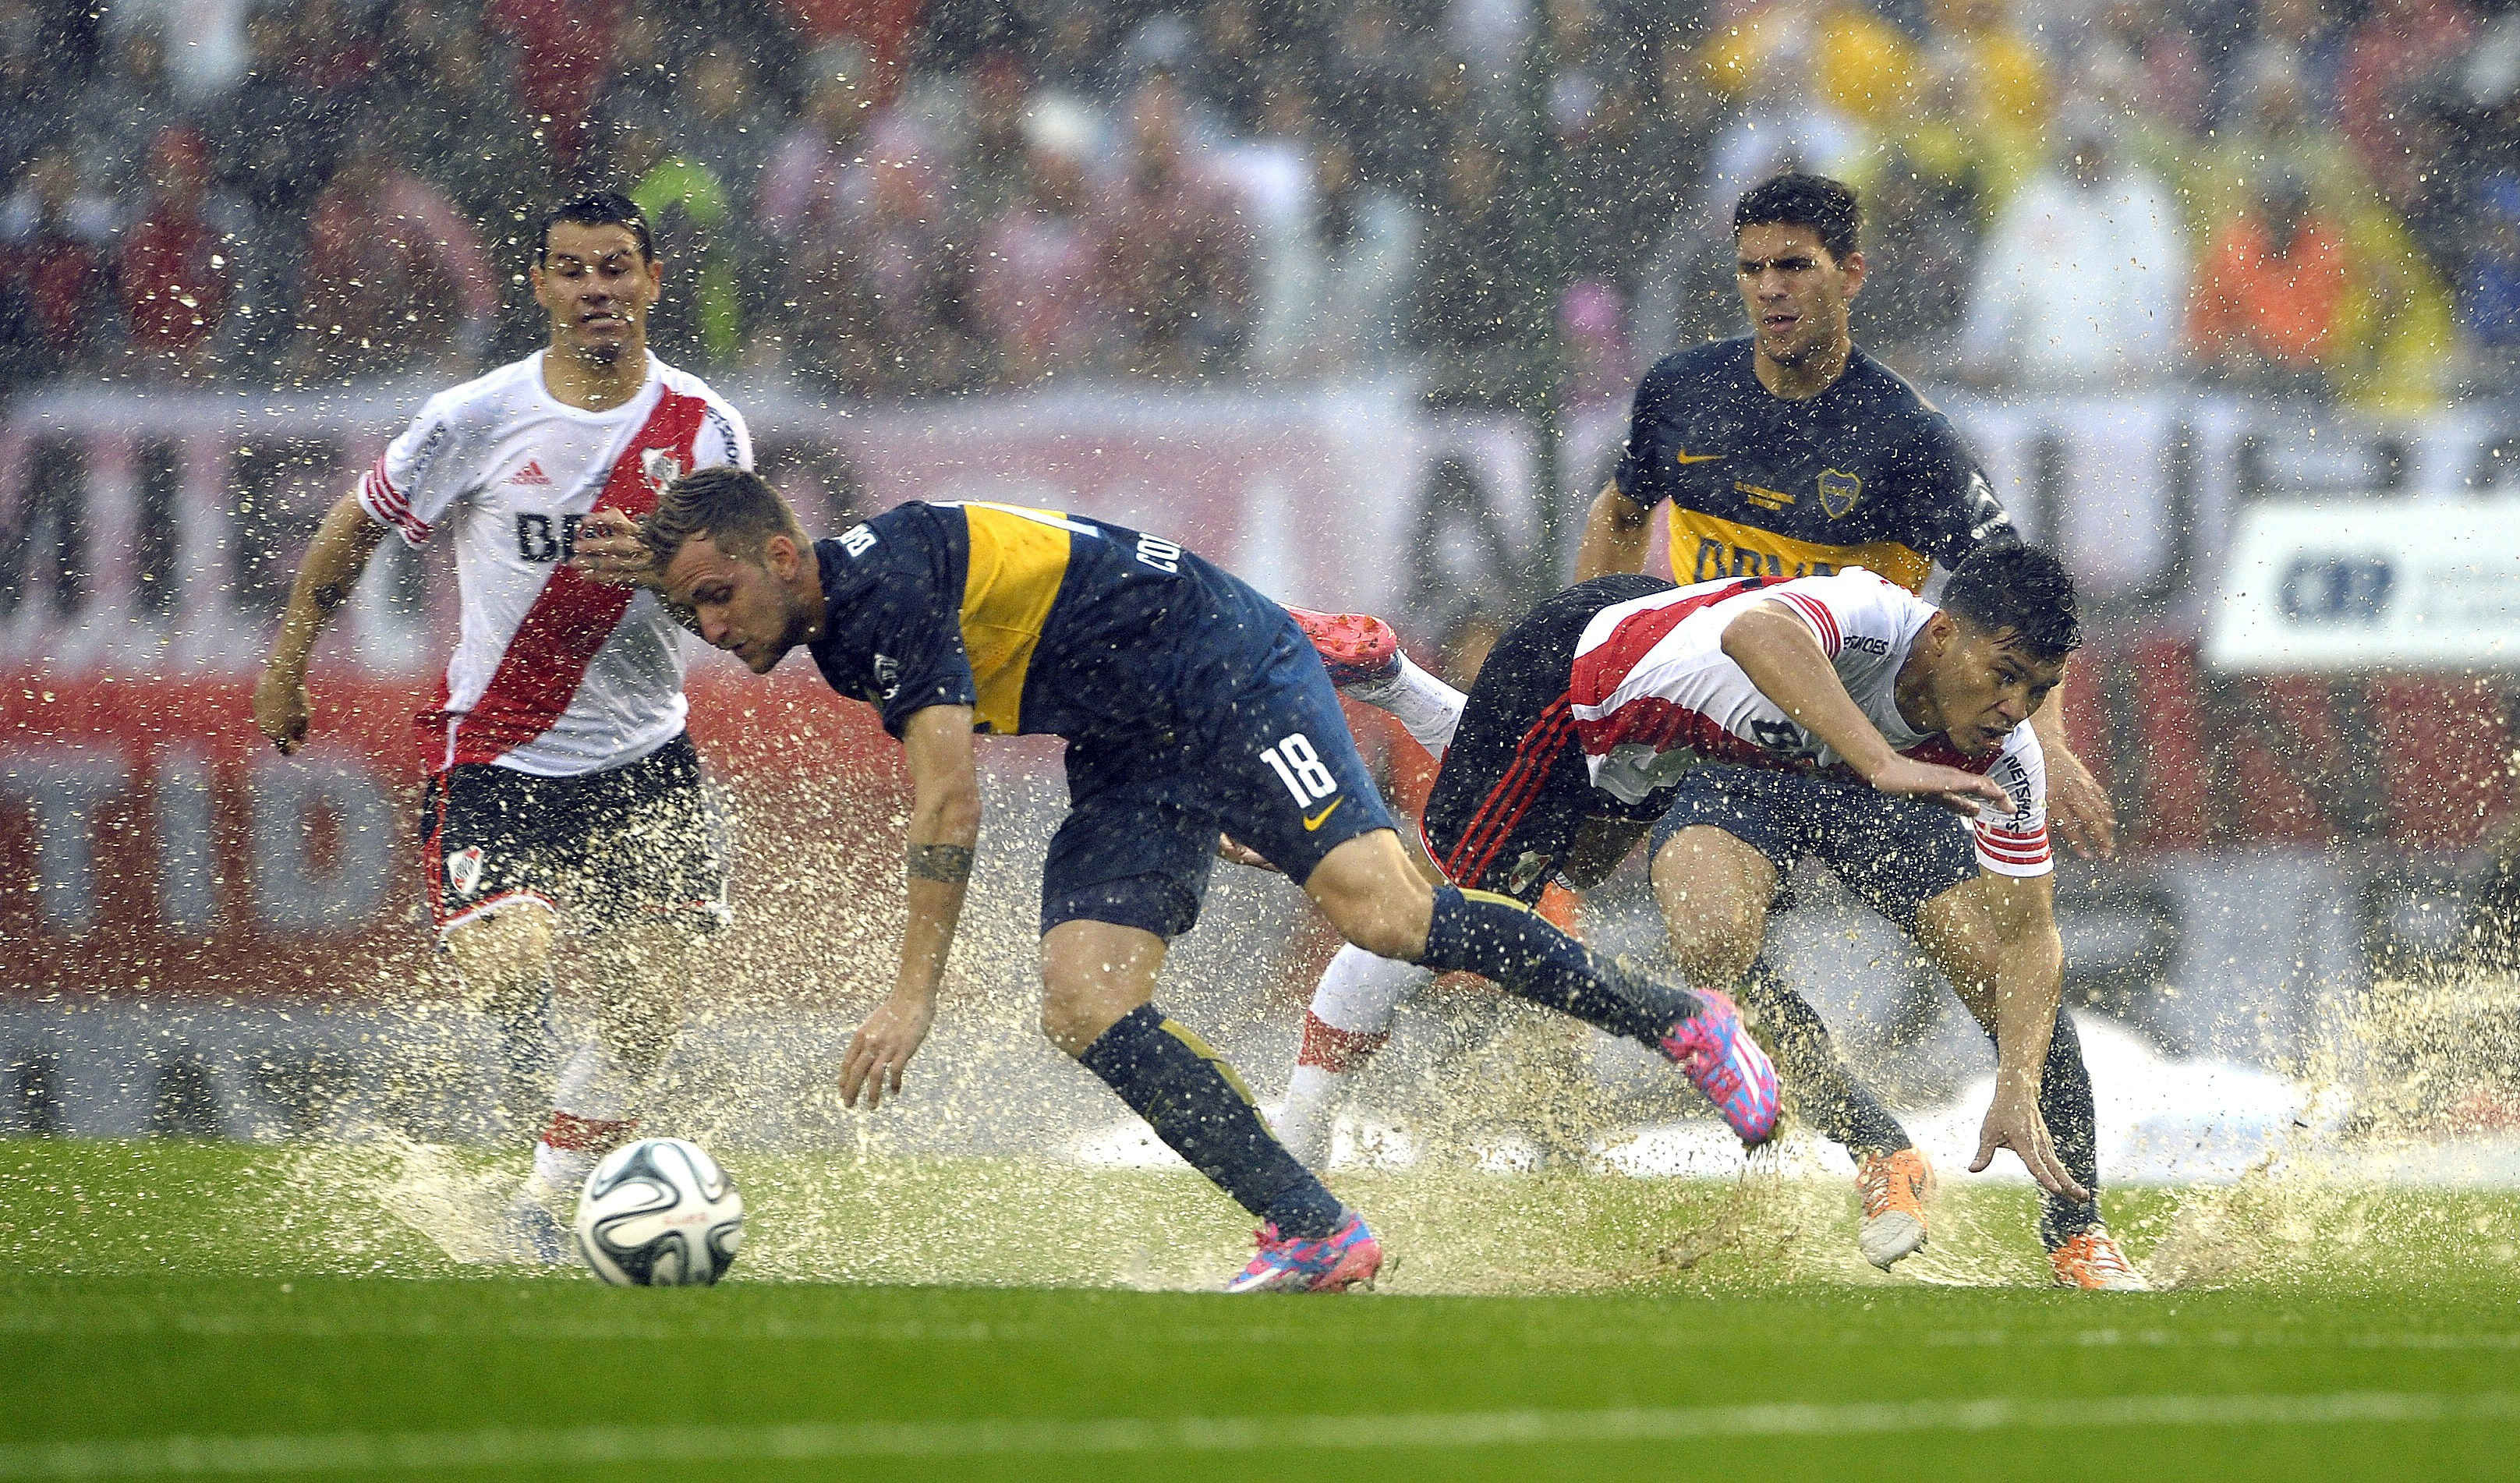 Boca Juniors' midfielder Nicolas Colazo (C-L) vies for the ball with River Plate's forward Teofilo Gutierrez (C-R) during their Argentina First Division football match, at the Monumental stadium in Buenos Aires, Argentina, on October 5, 2014. AFP PHOTO / Alejandro PAGNI (Photo credit should read ALEJANDRO PAGNI/AFP/Getty Images)